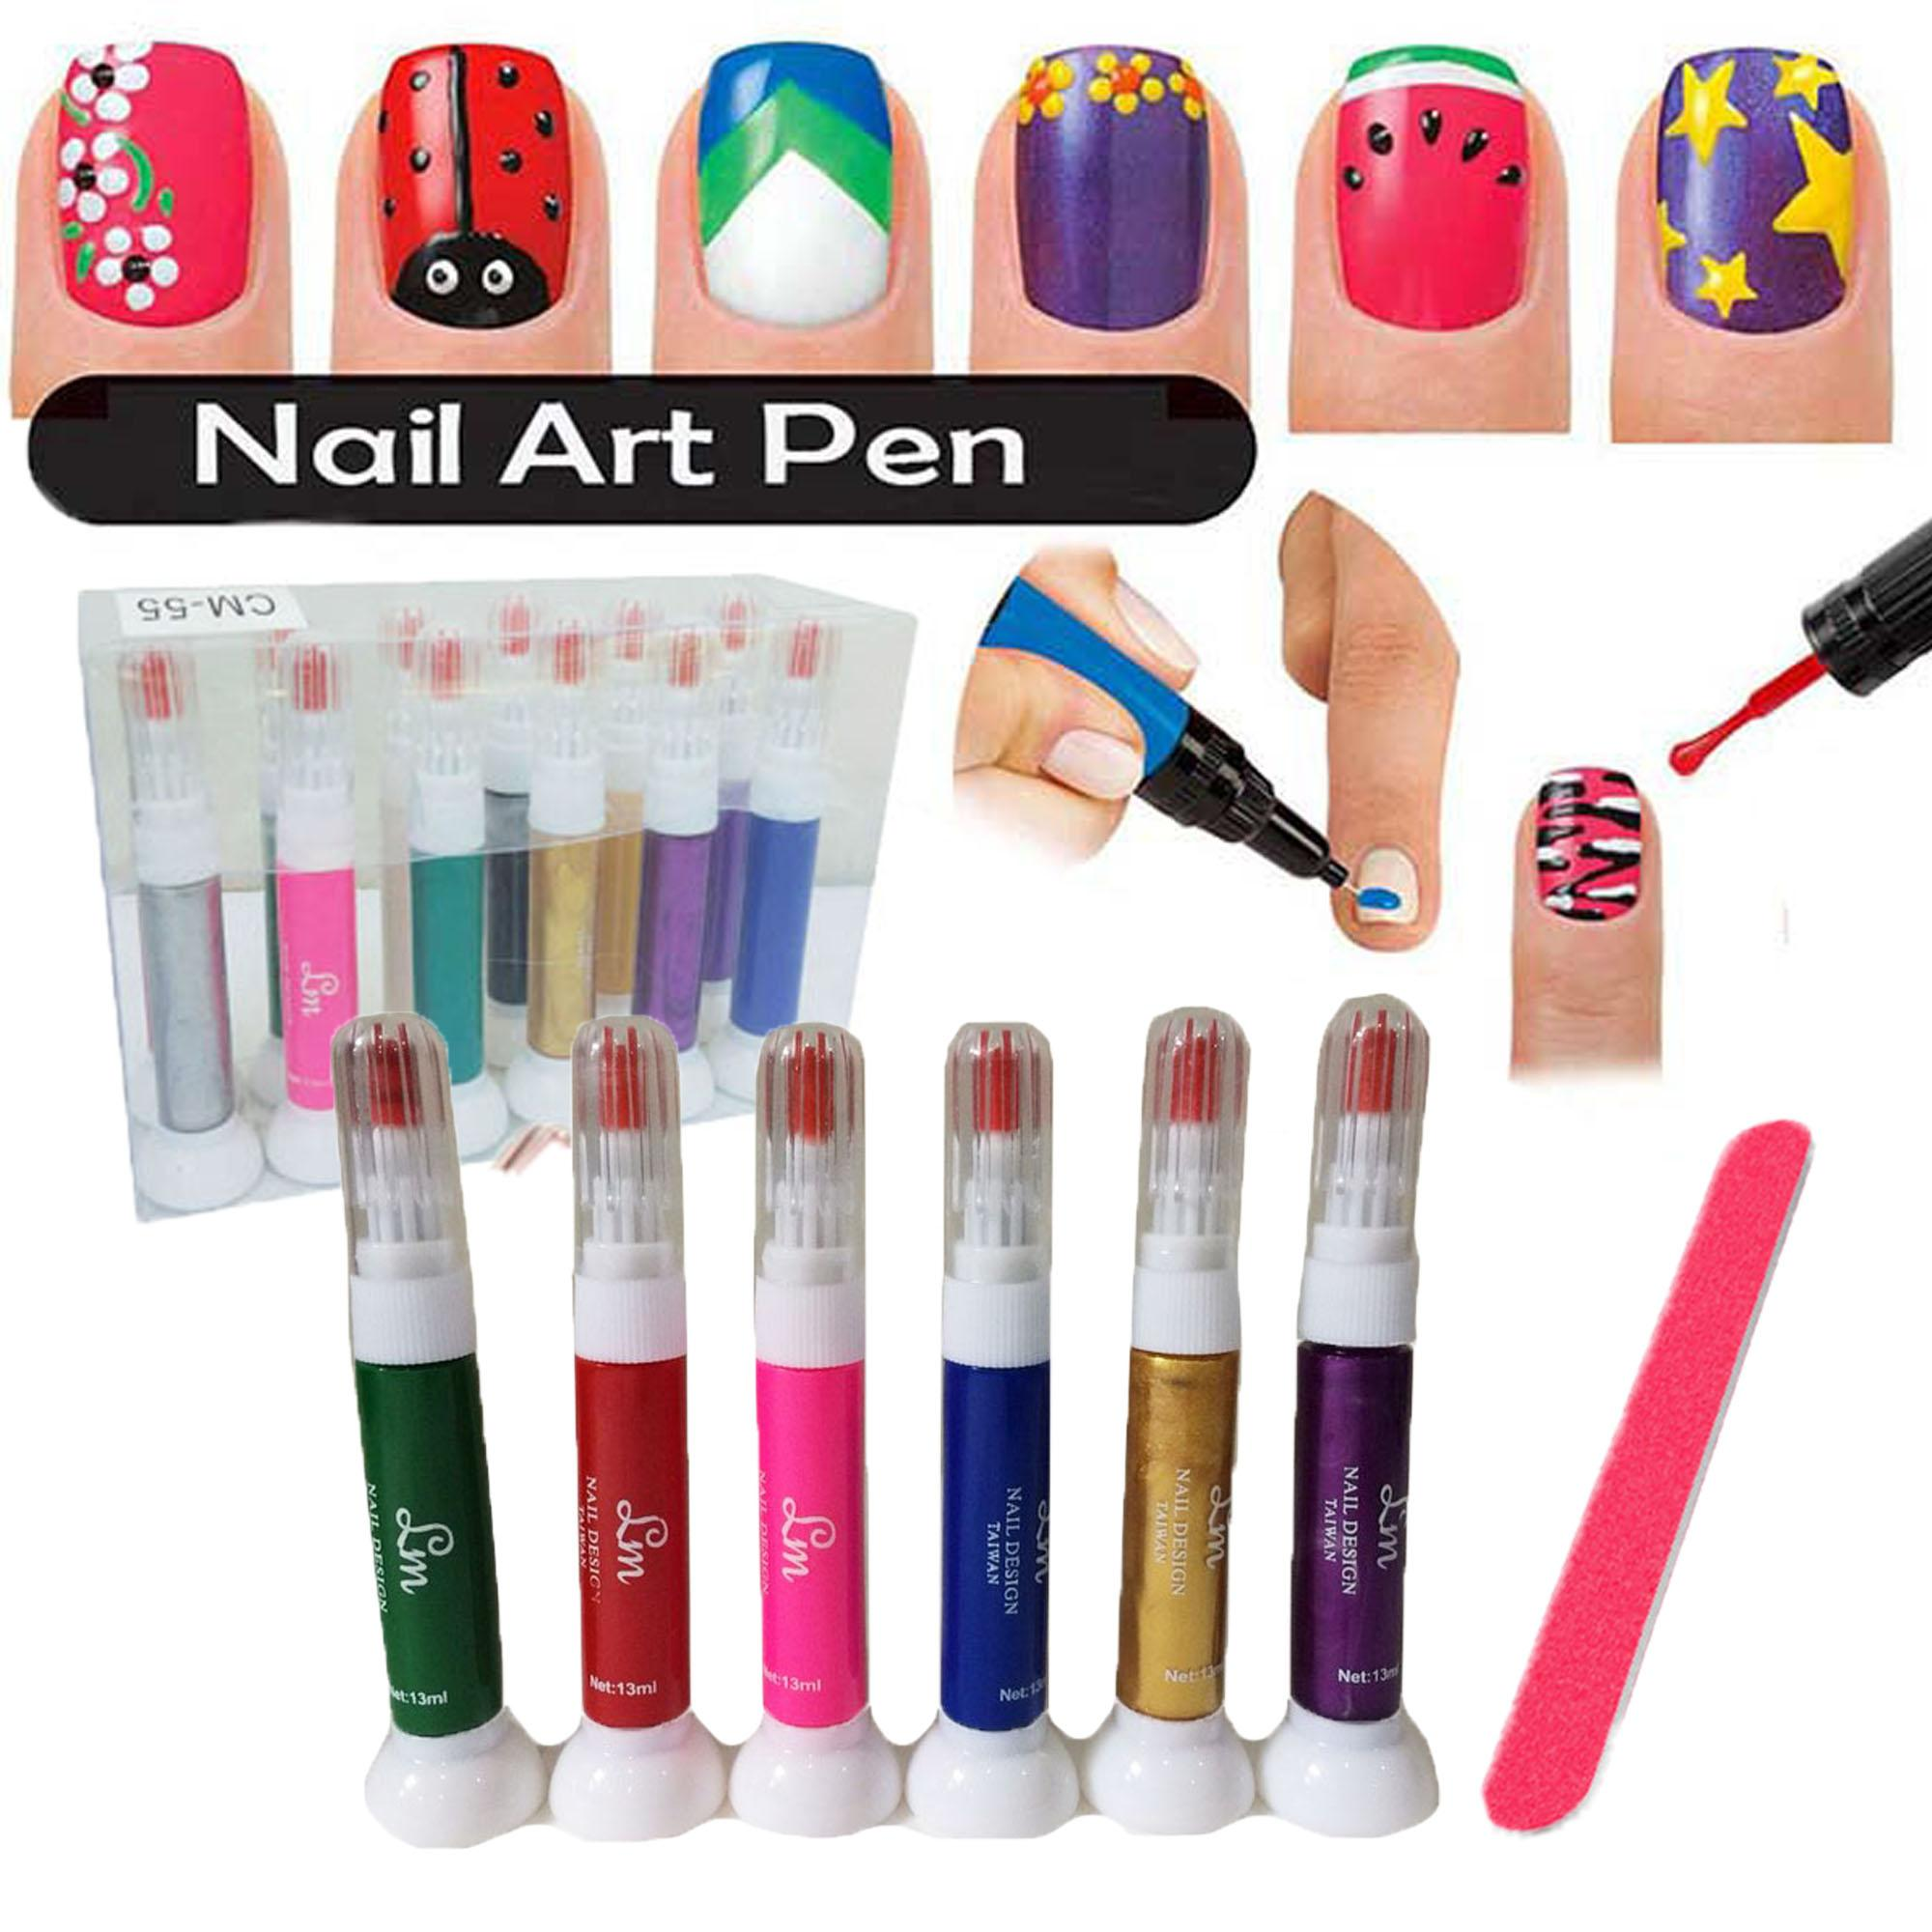 Nail Polish brands - Nail Colors for sale online in Philippines ...